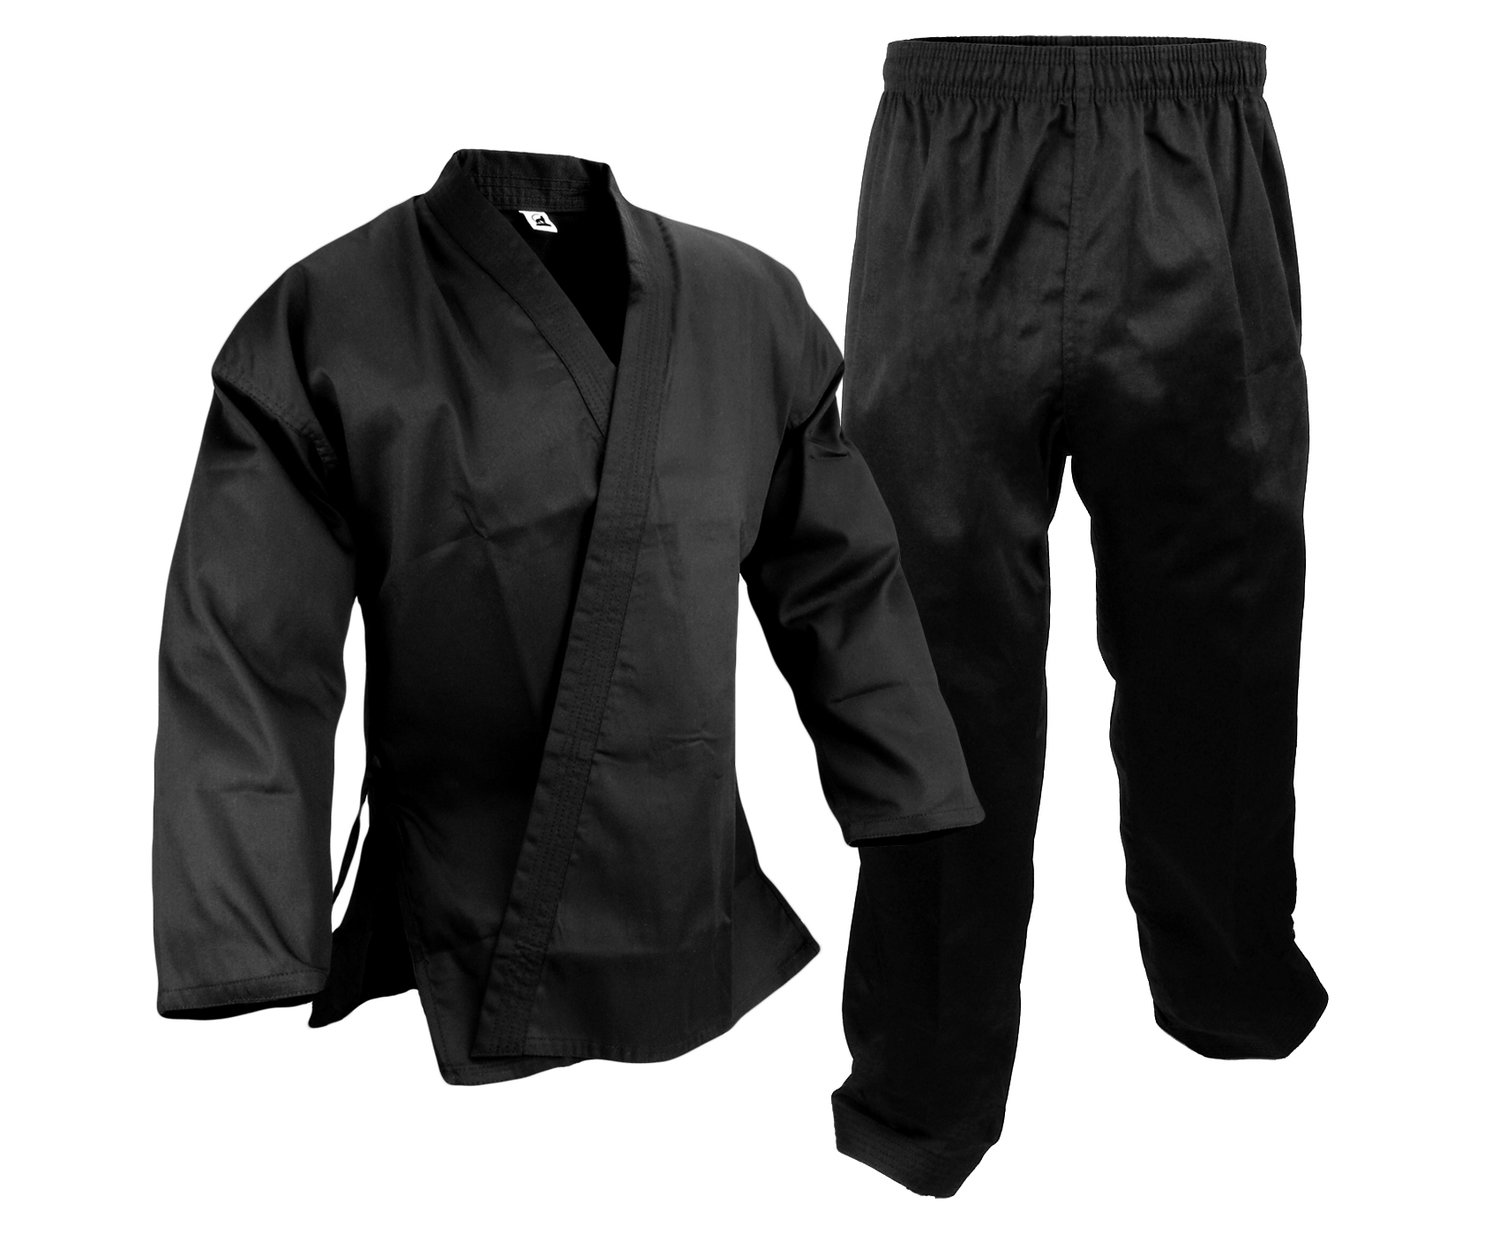 Student Karate Uniform, Light W't., Black